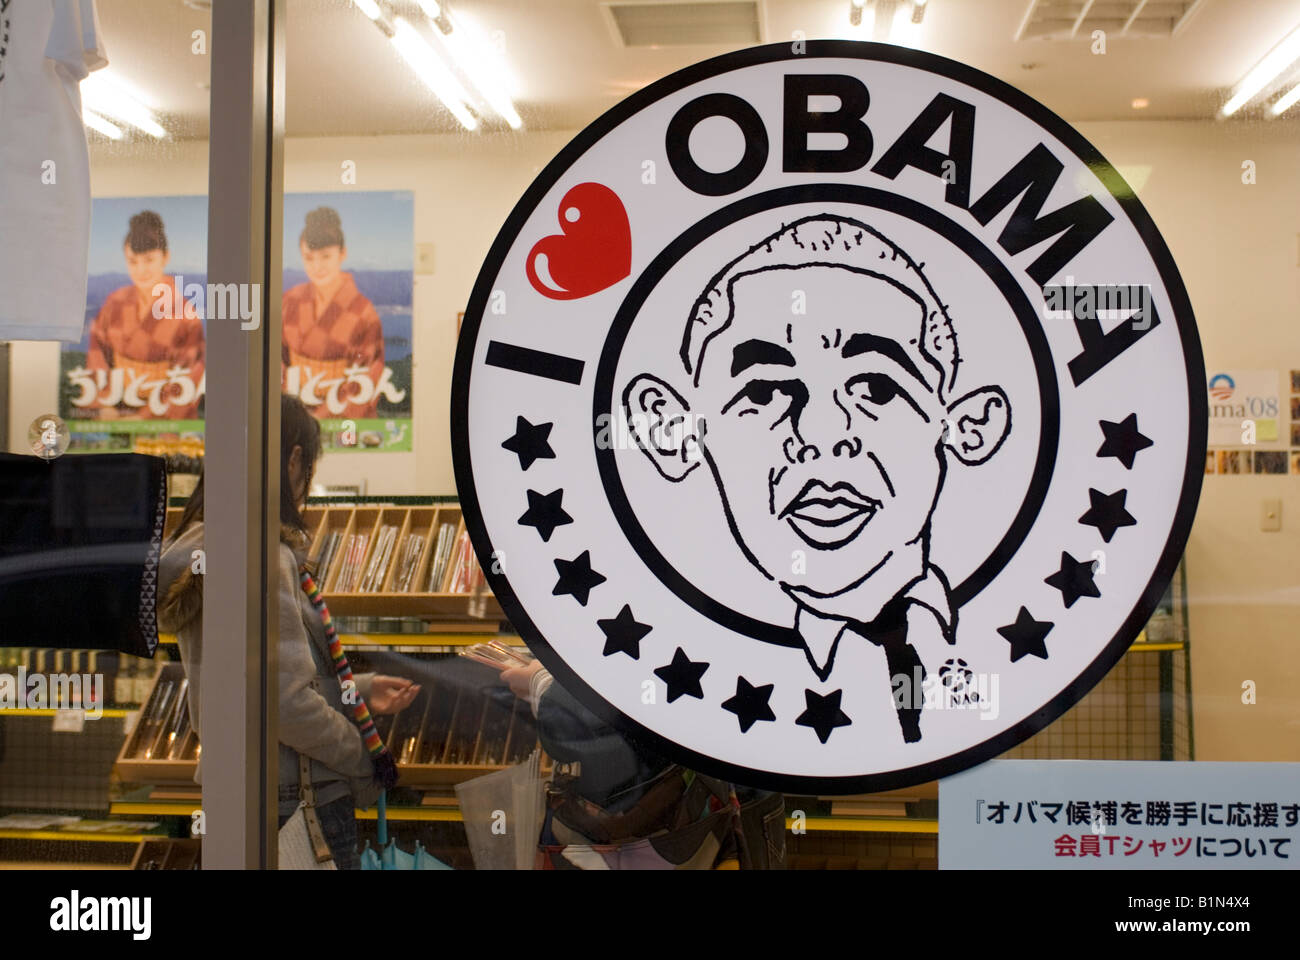 Souvenir shop show window sign in Obama, Japan selling Barack Obama goods - Stock Image